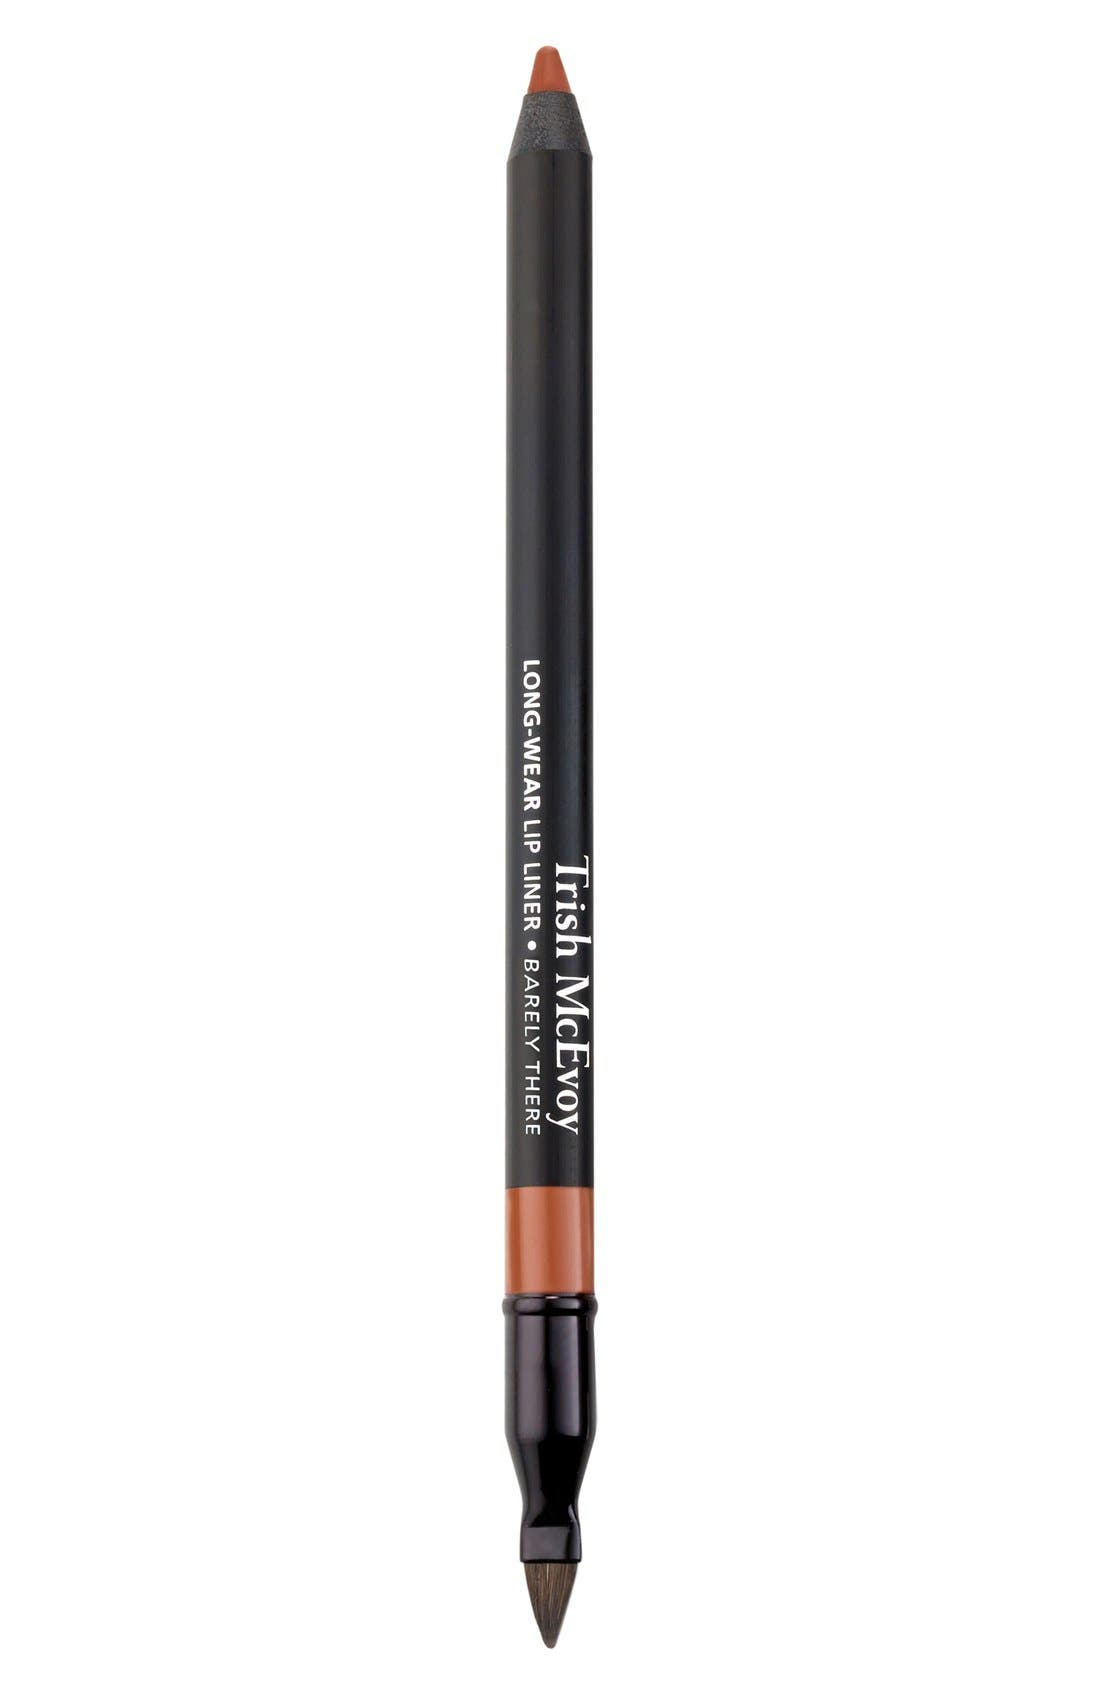 Trish McEvoy Long-Wear Lip Liner